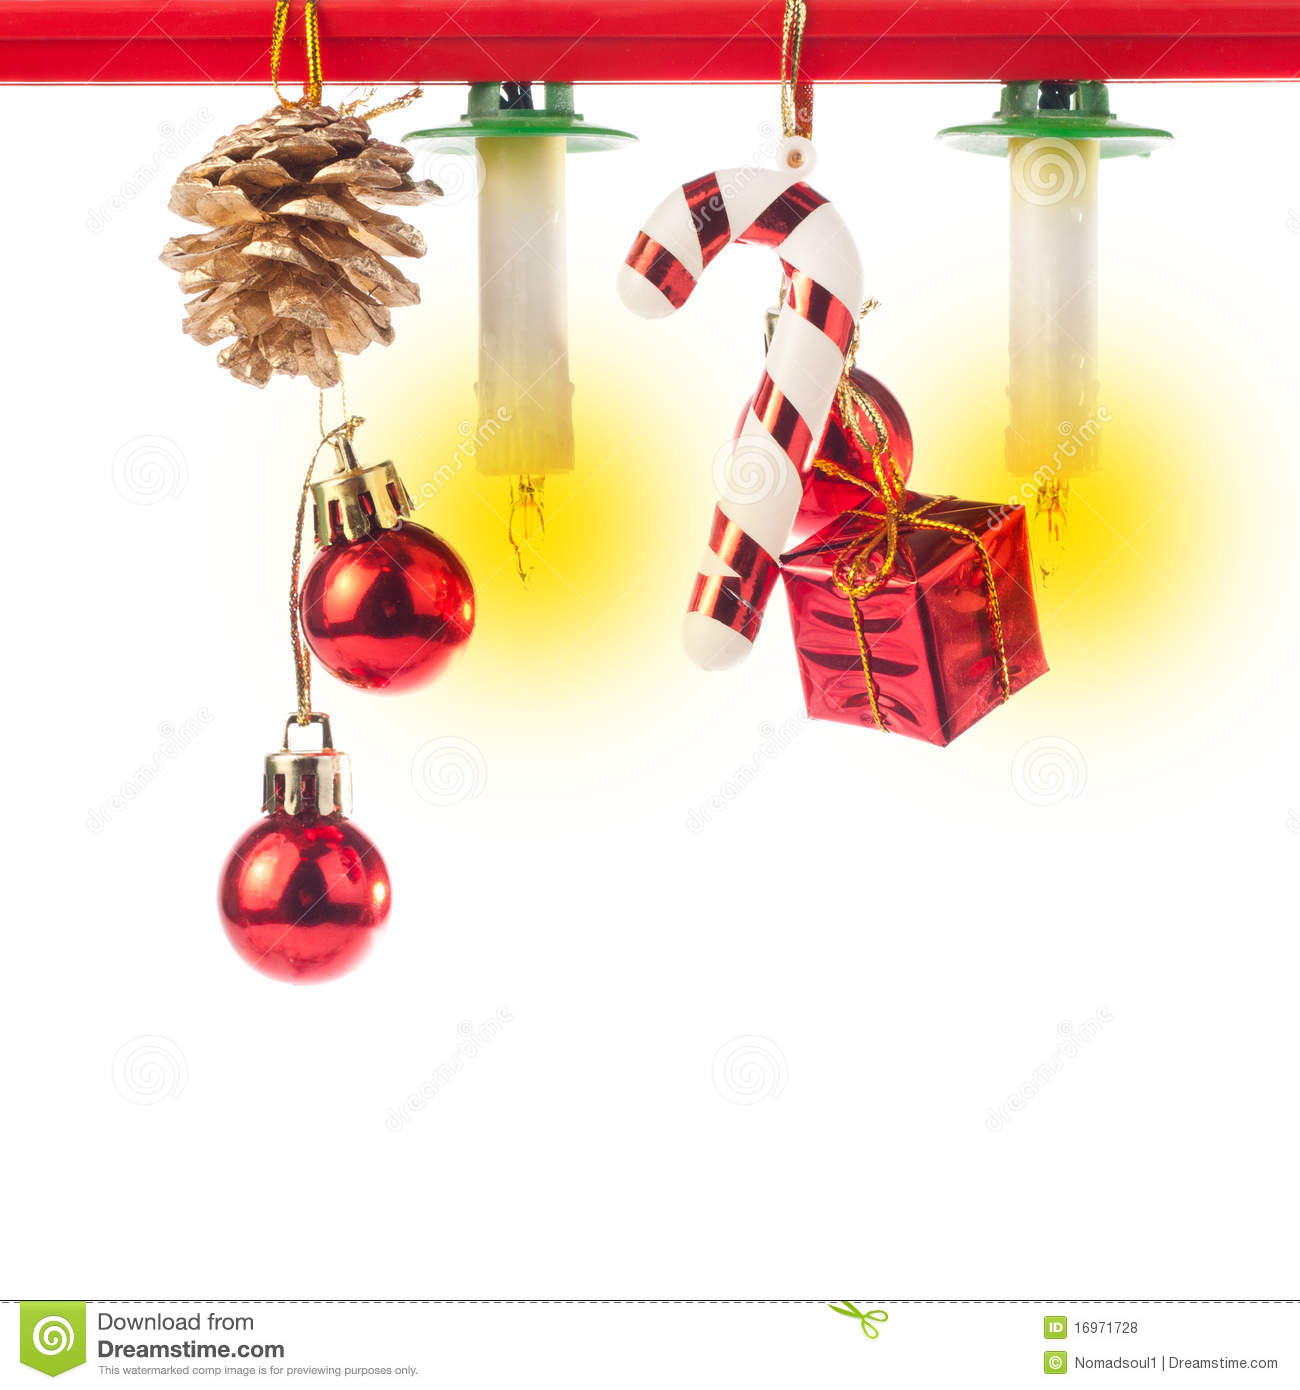 Christmas ornaments and candles stock photo image 16971728 for Christmas candles and ornaments